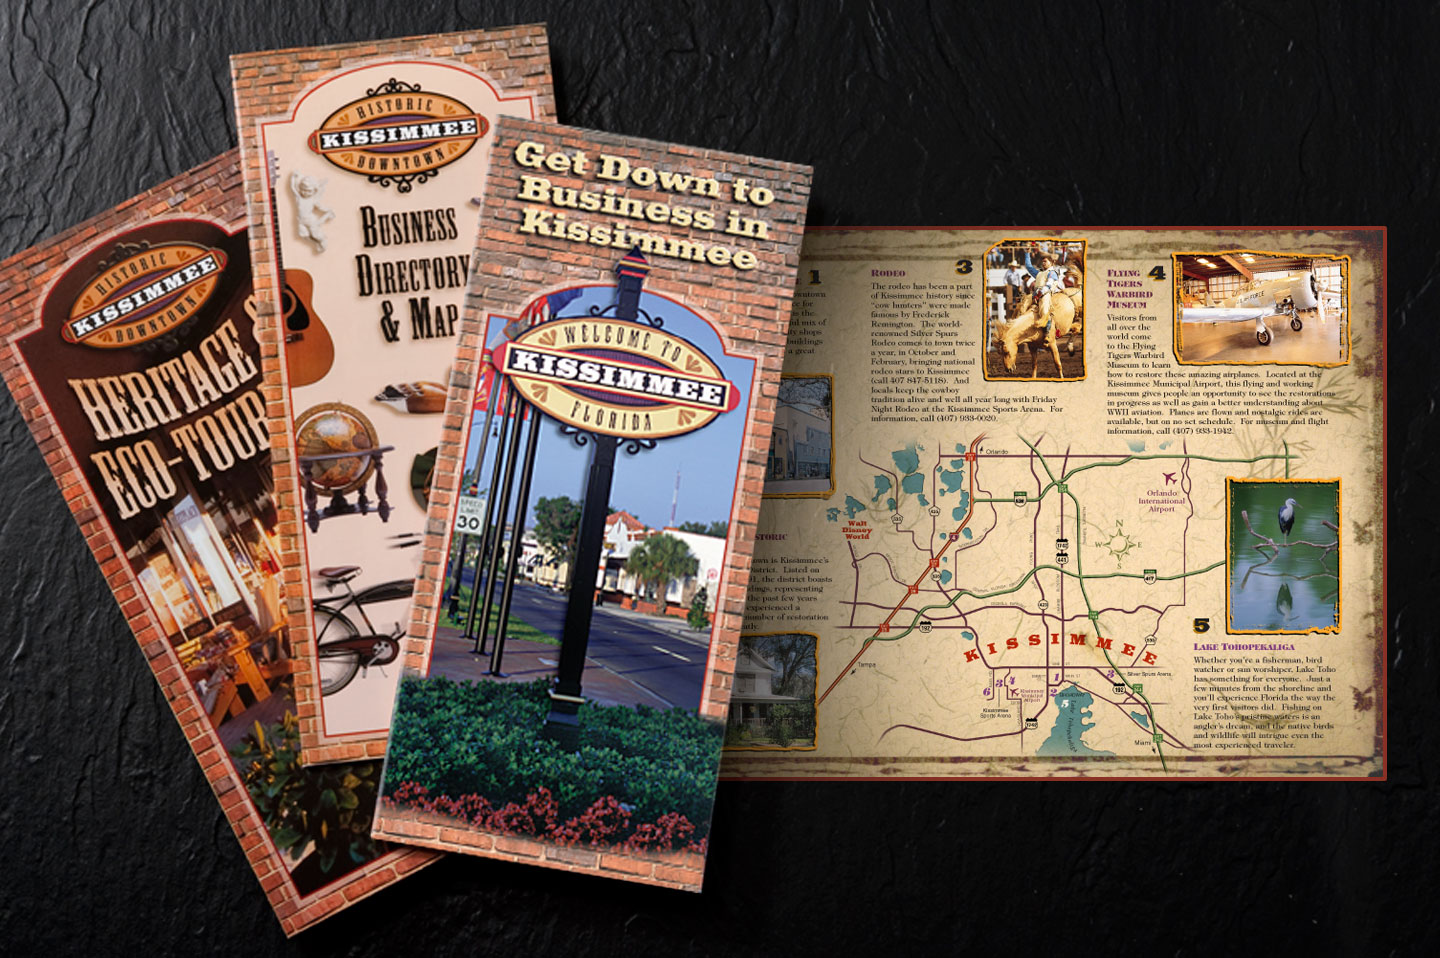 Historic Downtown Kissimmee marketing brochures